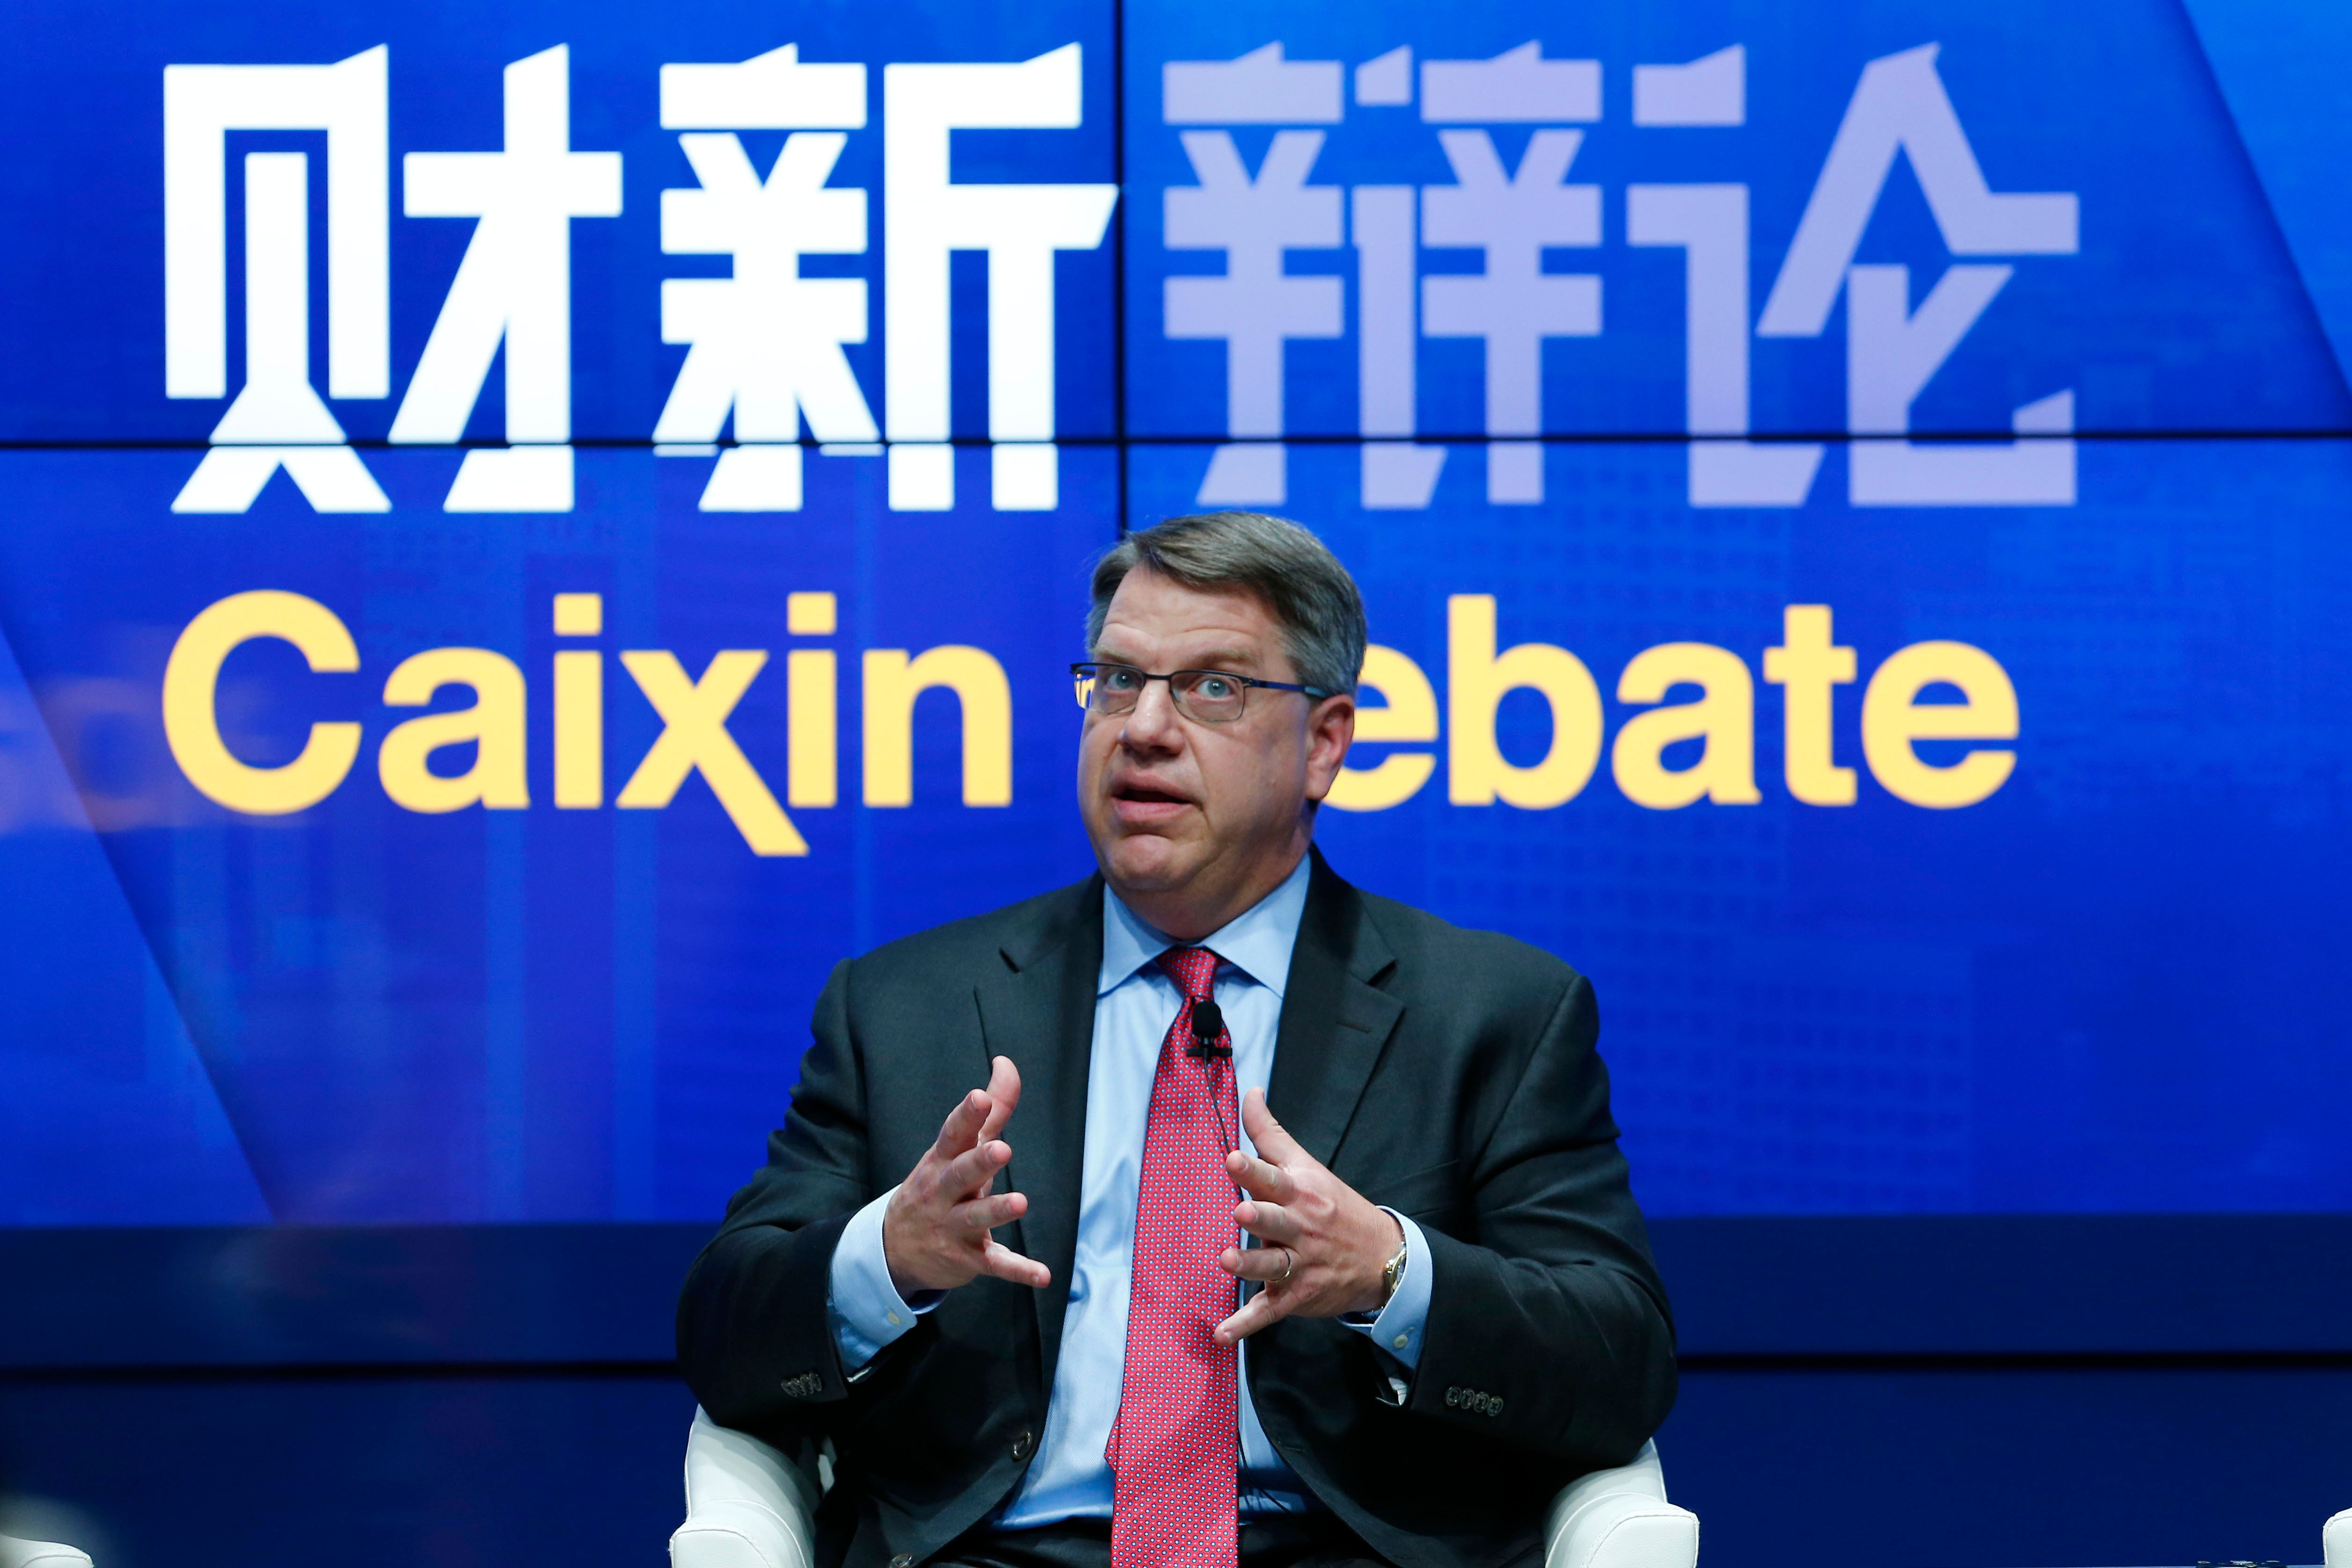 DALIAN, CHINA - SEPTEMBER 09: (CHINA OUT) Rich Lesser, president and CEO of Boston Consulting Group, speaks during 2015 World Economic Forum (aka Summer Davos Forum) at Dalian International Convention Center on September 9, 2015 in Dalian, Liaoning Province of China. (Photo by Fu Tian/CNSPHOTO/ChinaFotoPress via Getty Images)